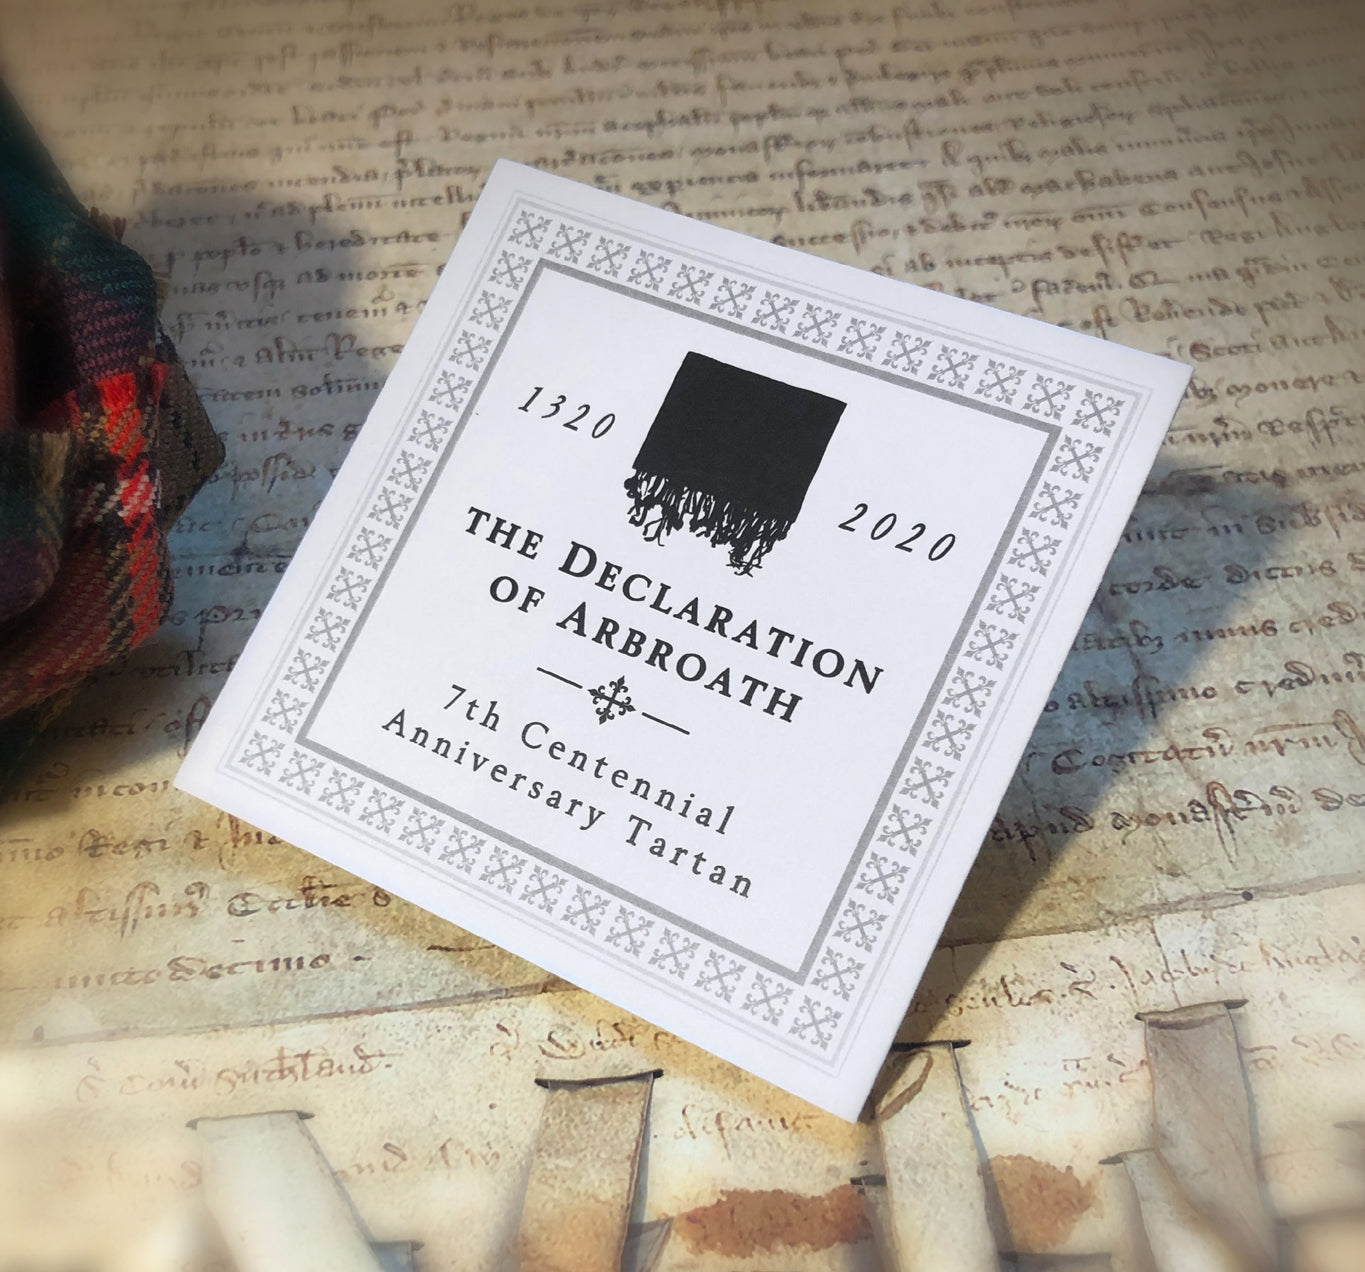 Declaration of Arbroath 7th Centennial Anniversary Tartan 4